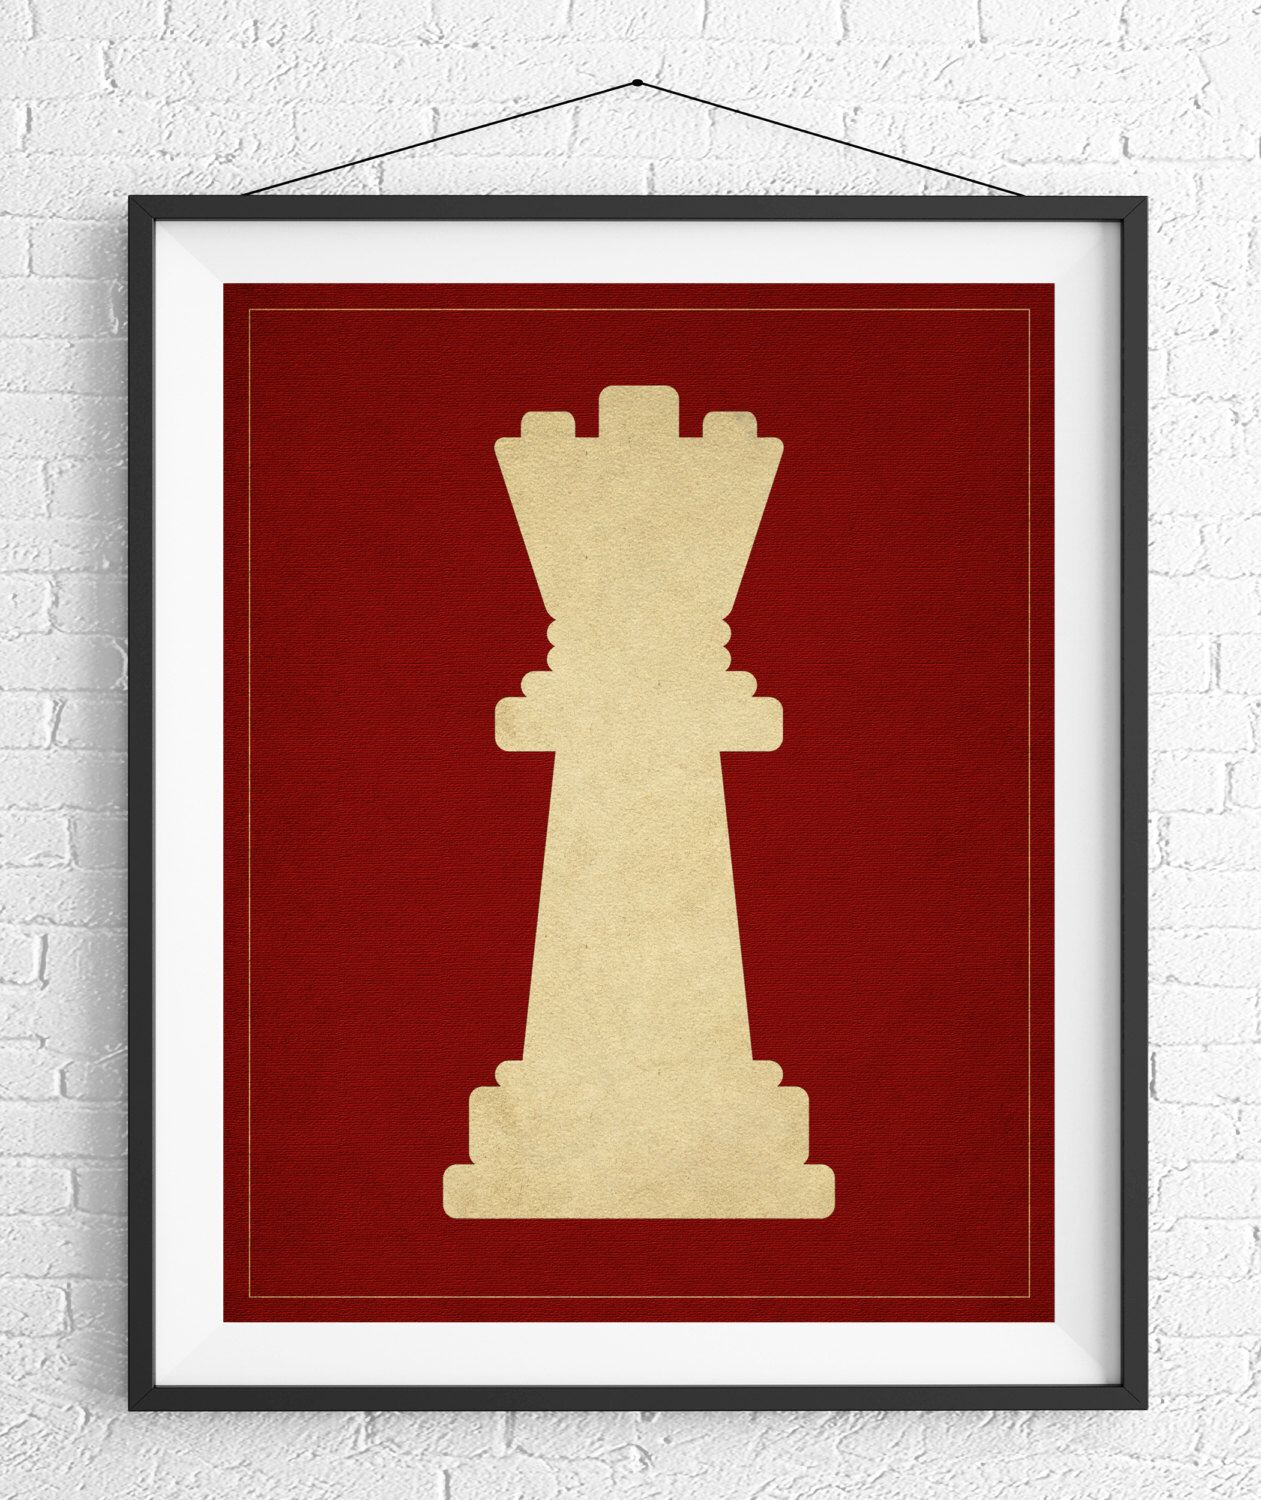 Game Room Wall Decor Chess Art Queen Chess Piece Print Board Game Art Game Room Wall